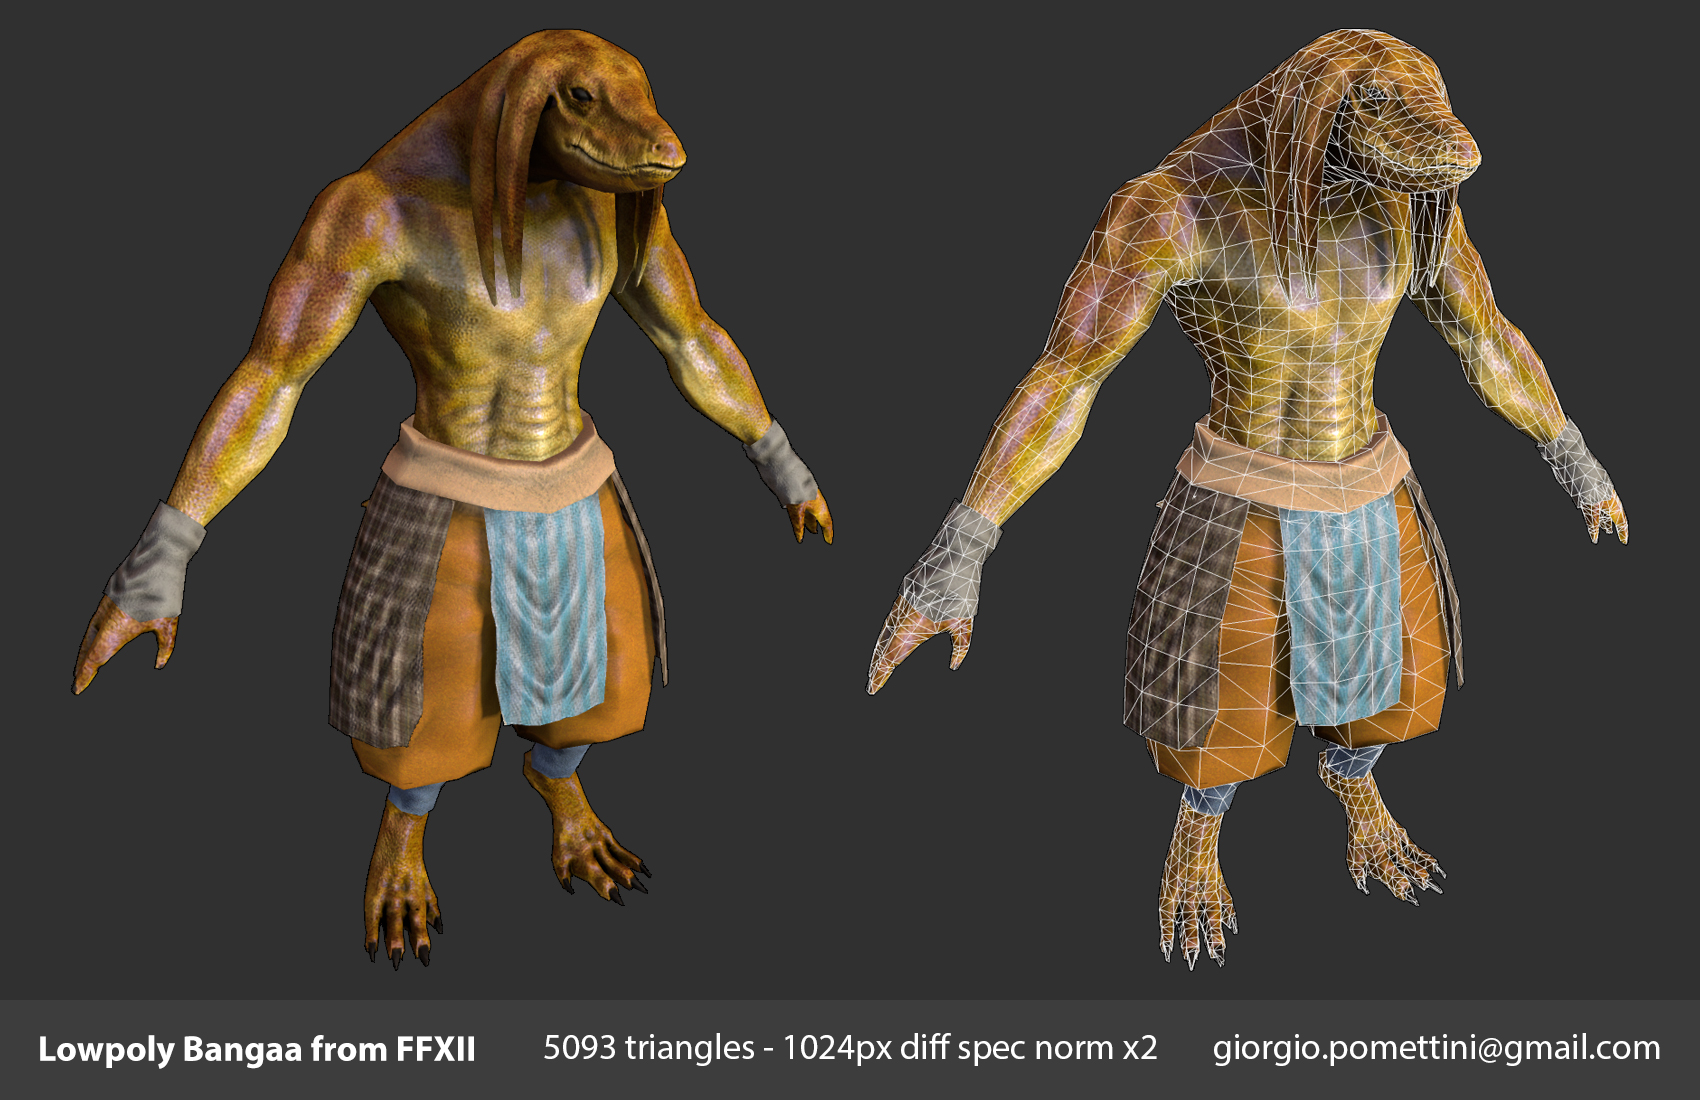 Lowpoly Bangaa from Final Fantasy by MightyDargor